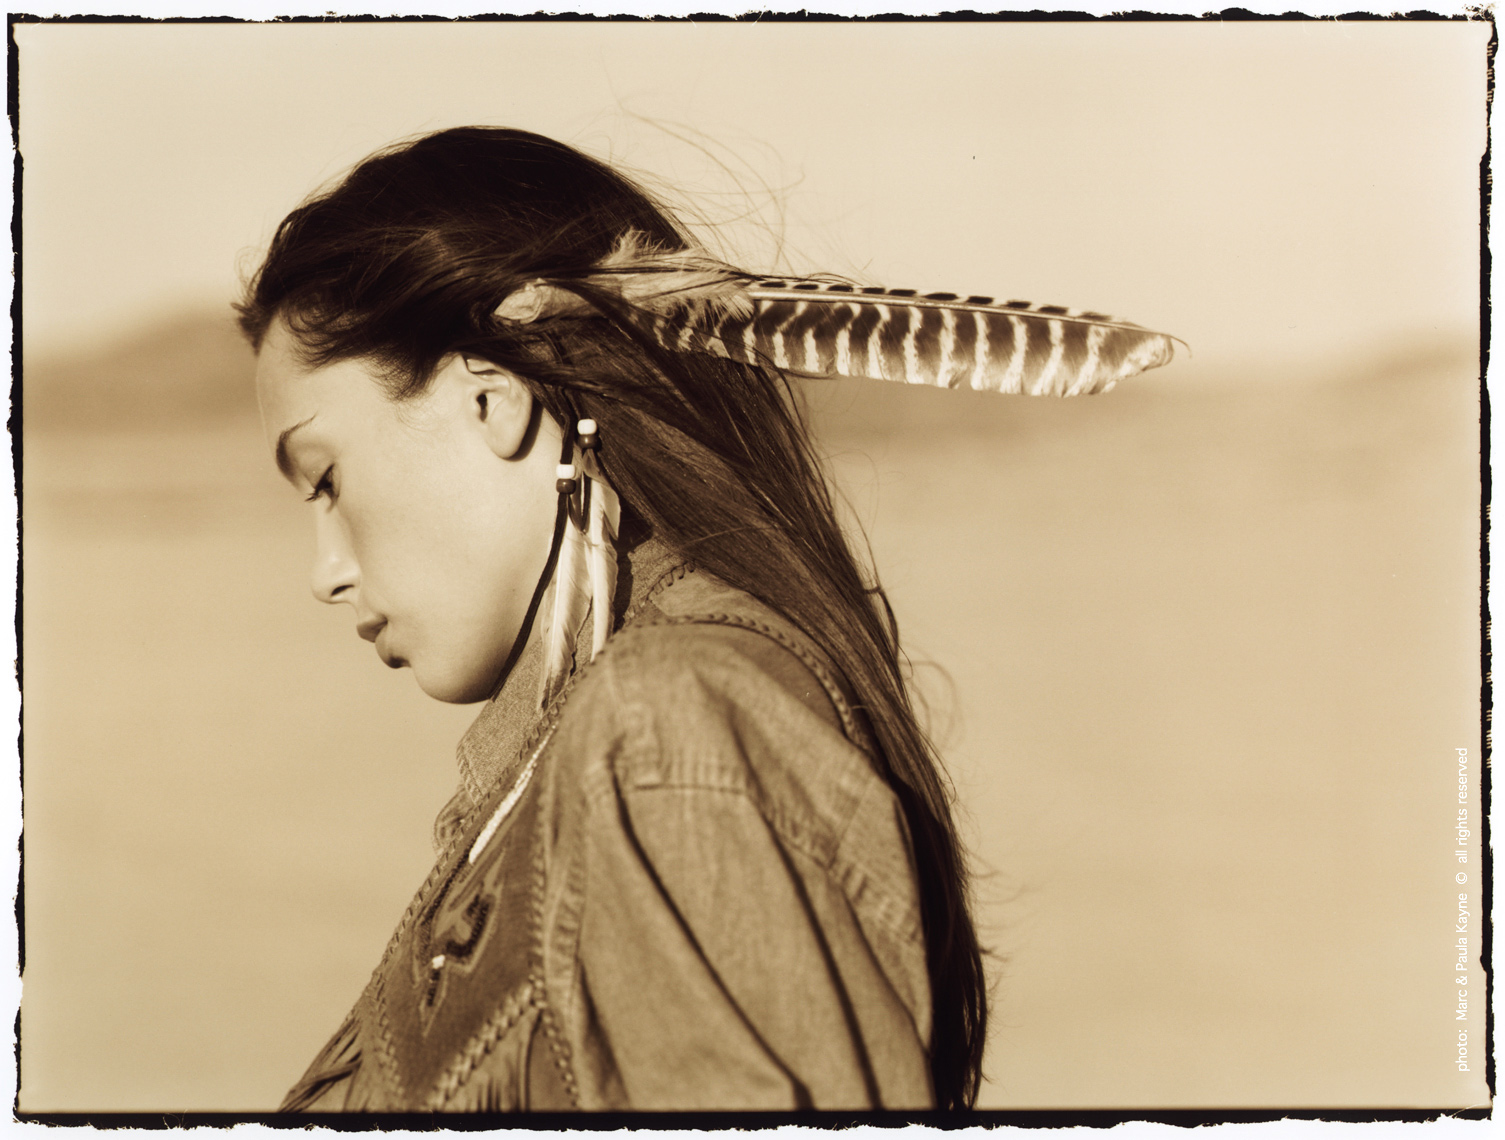 NATIVE_AMERICAN_Marc_Kayne-61288.043.jpg